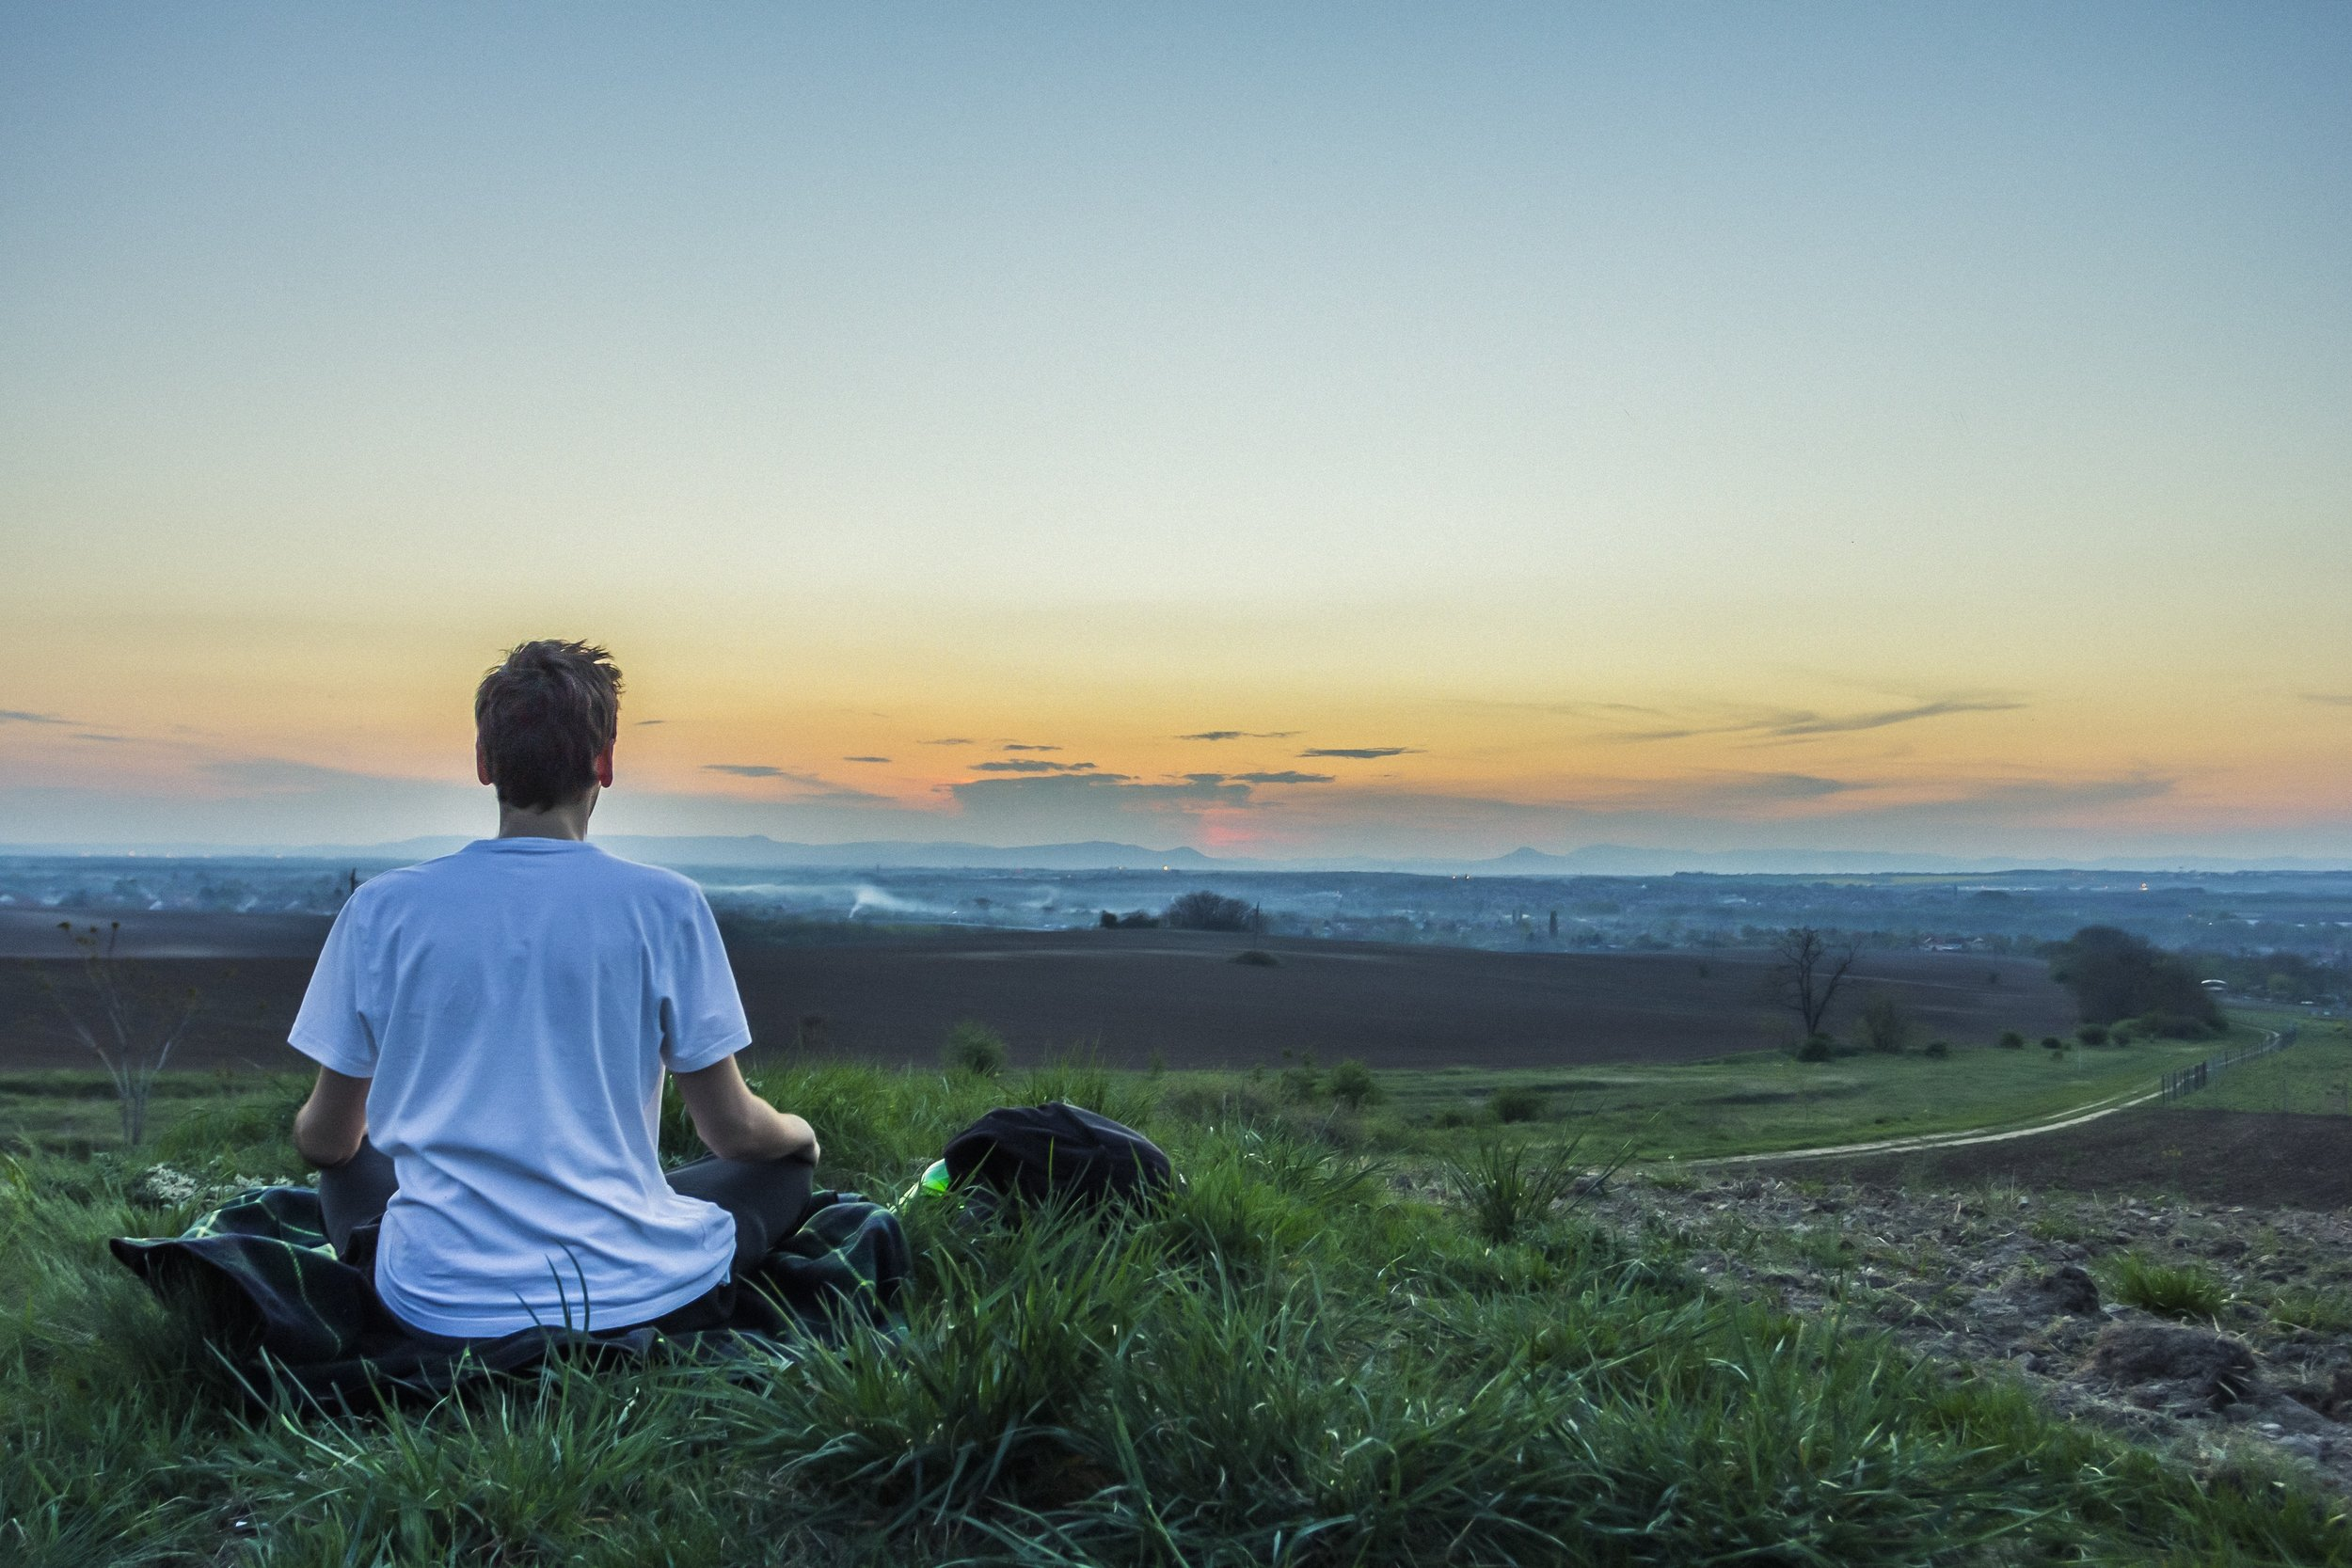 Mindfulness what is it?